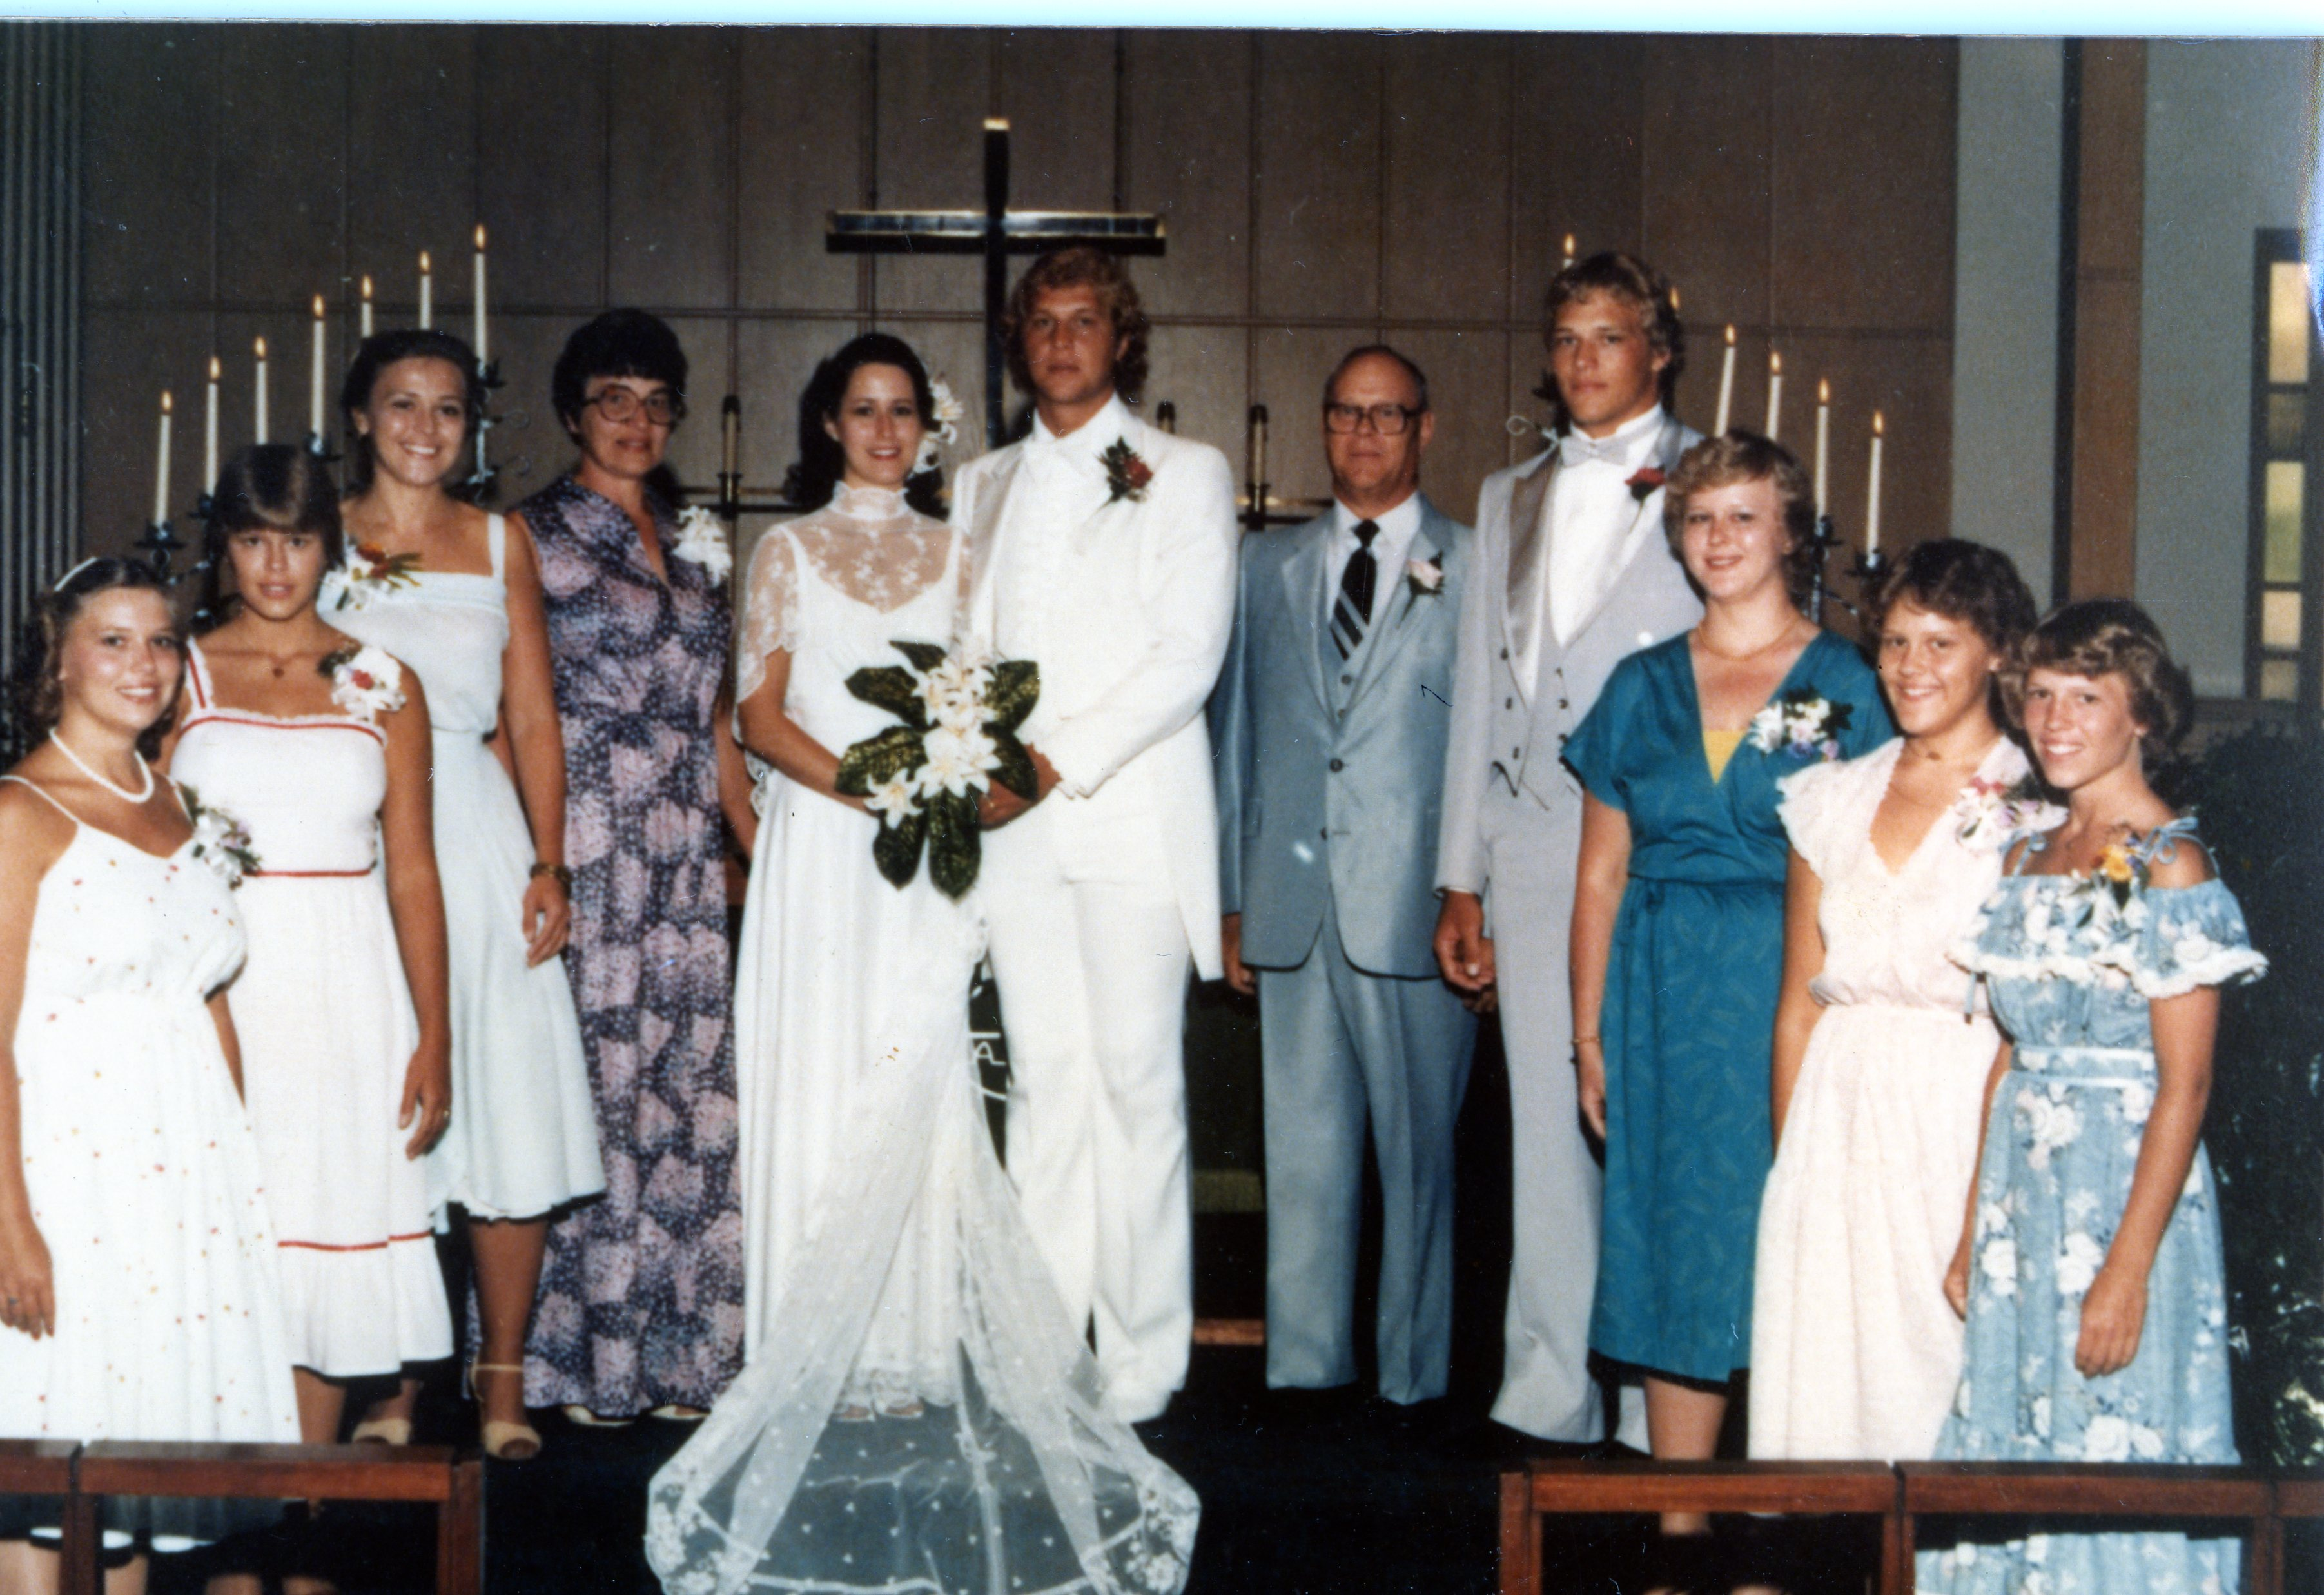 Mark's Wedding 1981